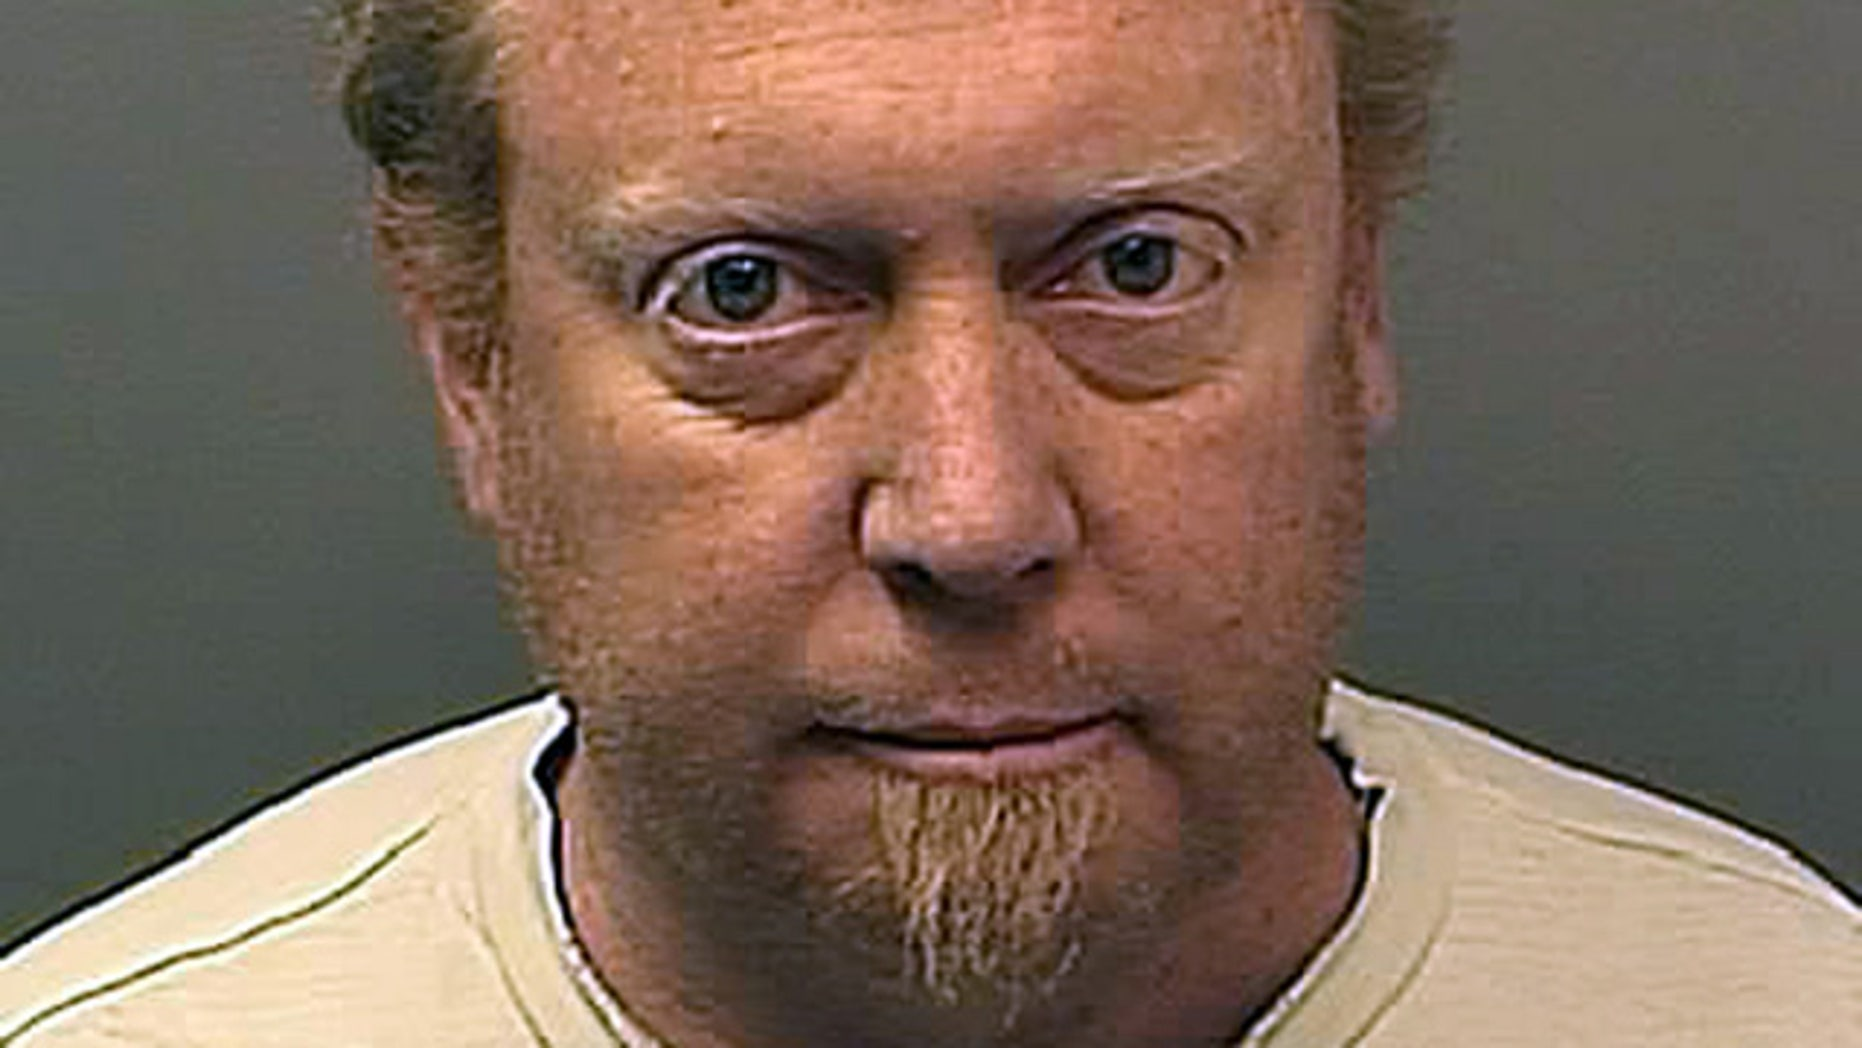 Dec. 20: This photo provided by Pueblo County Sheriff's Office shows Phillip Ray Greaves II. Florida officials filed an obscenity charge against the author of a self-published how-to guide for pedophiles that was yanked from Amazon.com last month after it generated online outrage. (AP/Pueblo County Sheriff's Office)